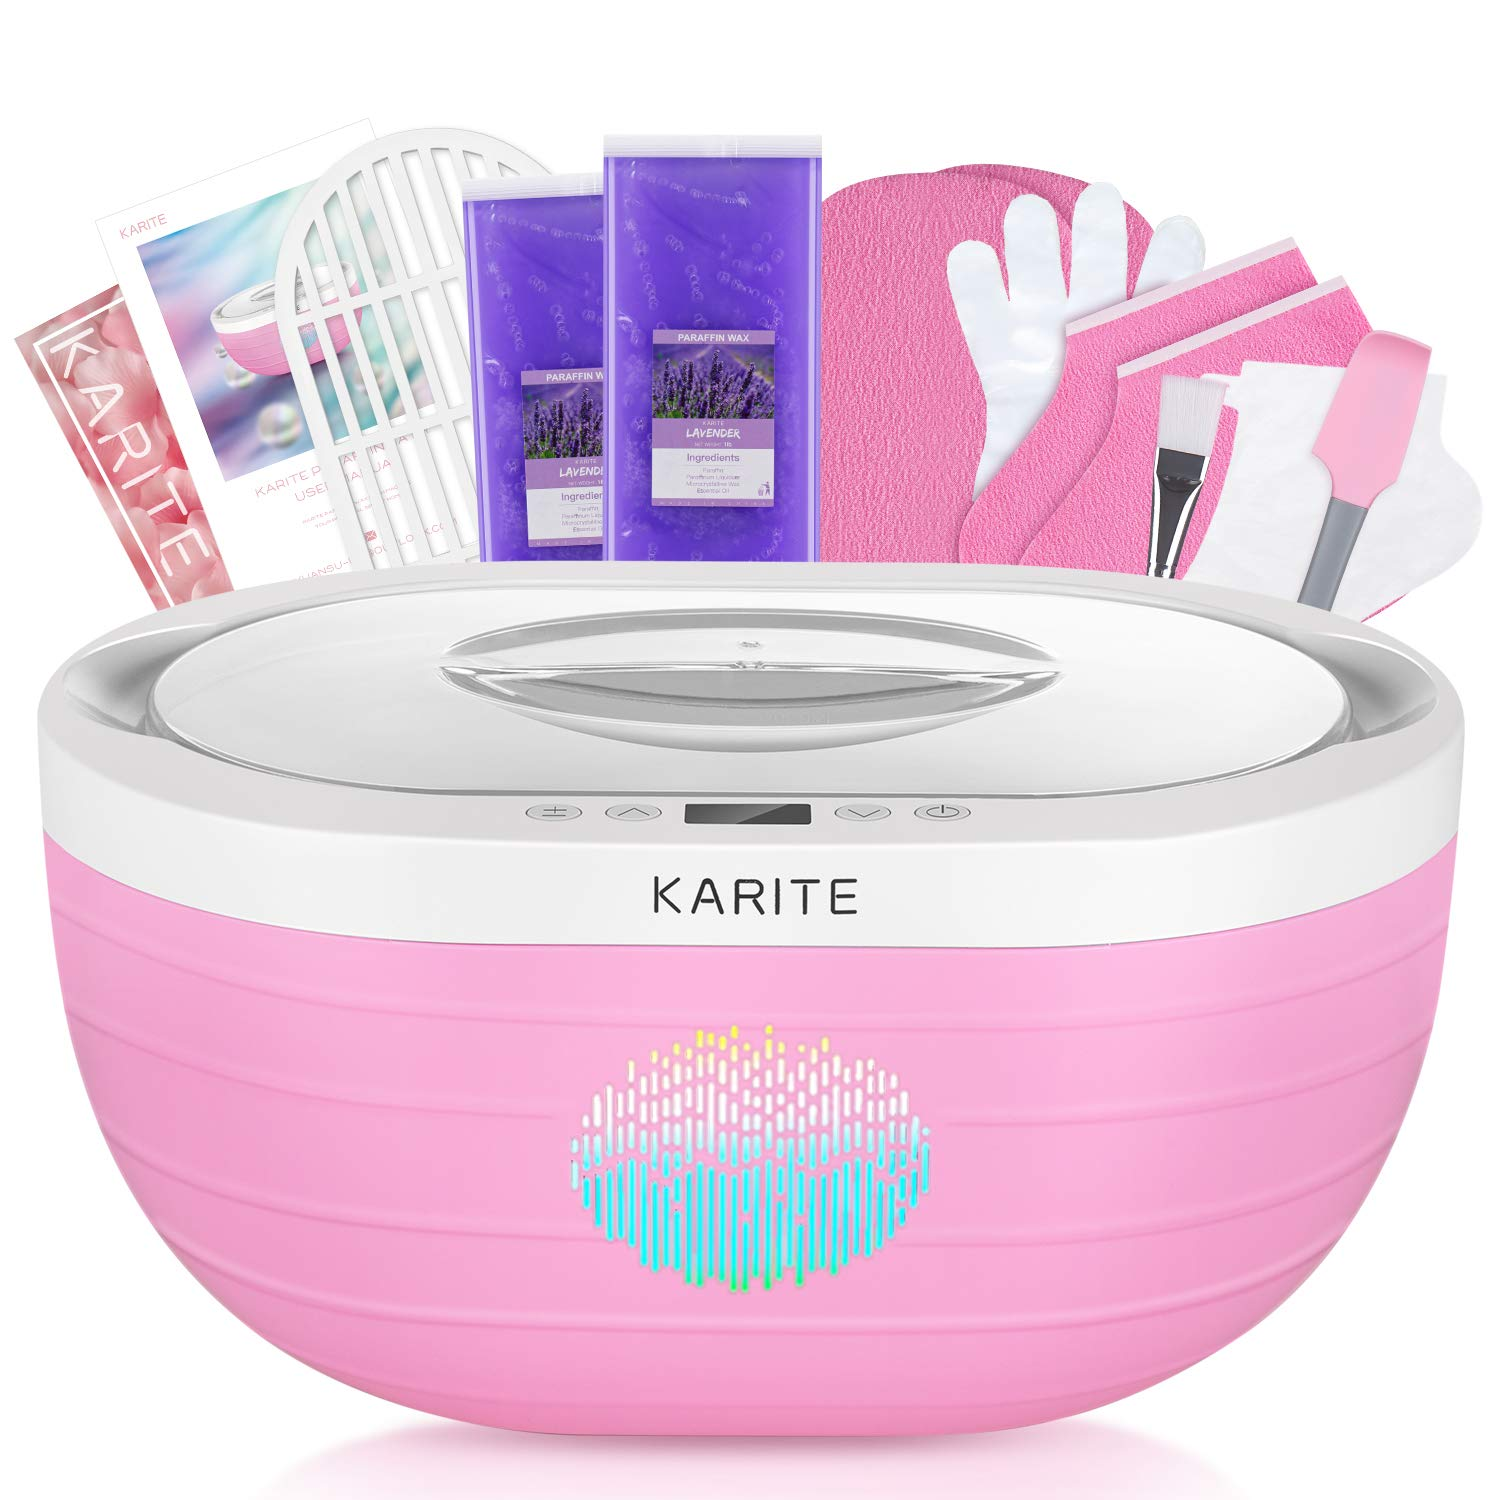 KARITE Paraffin Wax Machine for Hand and Feet, Fast Wax Meltdown Paraffin Bath, 3000ml Large Capacity Paraffin Wax Warmer with 2lb Paraffin Wax Refills & Thermal Mitts for SPA & Arthritis Treatment: Beauty